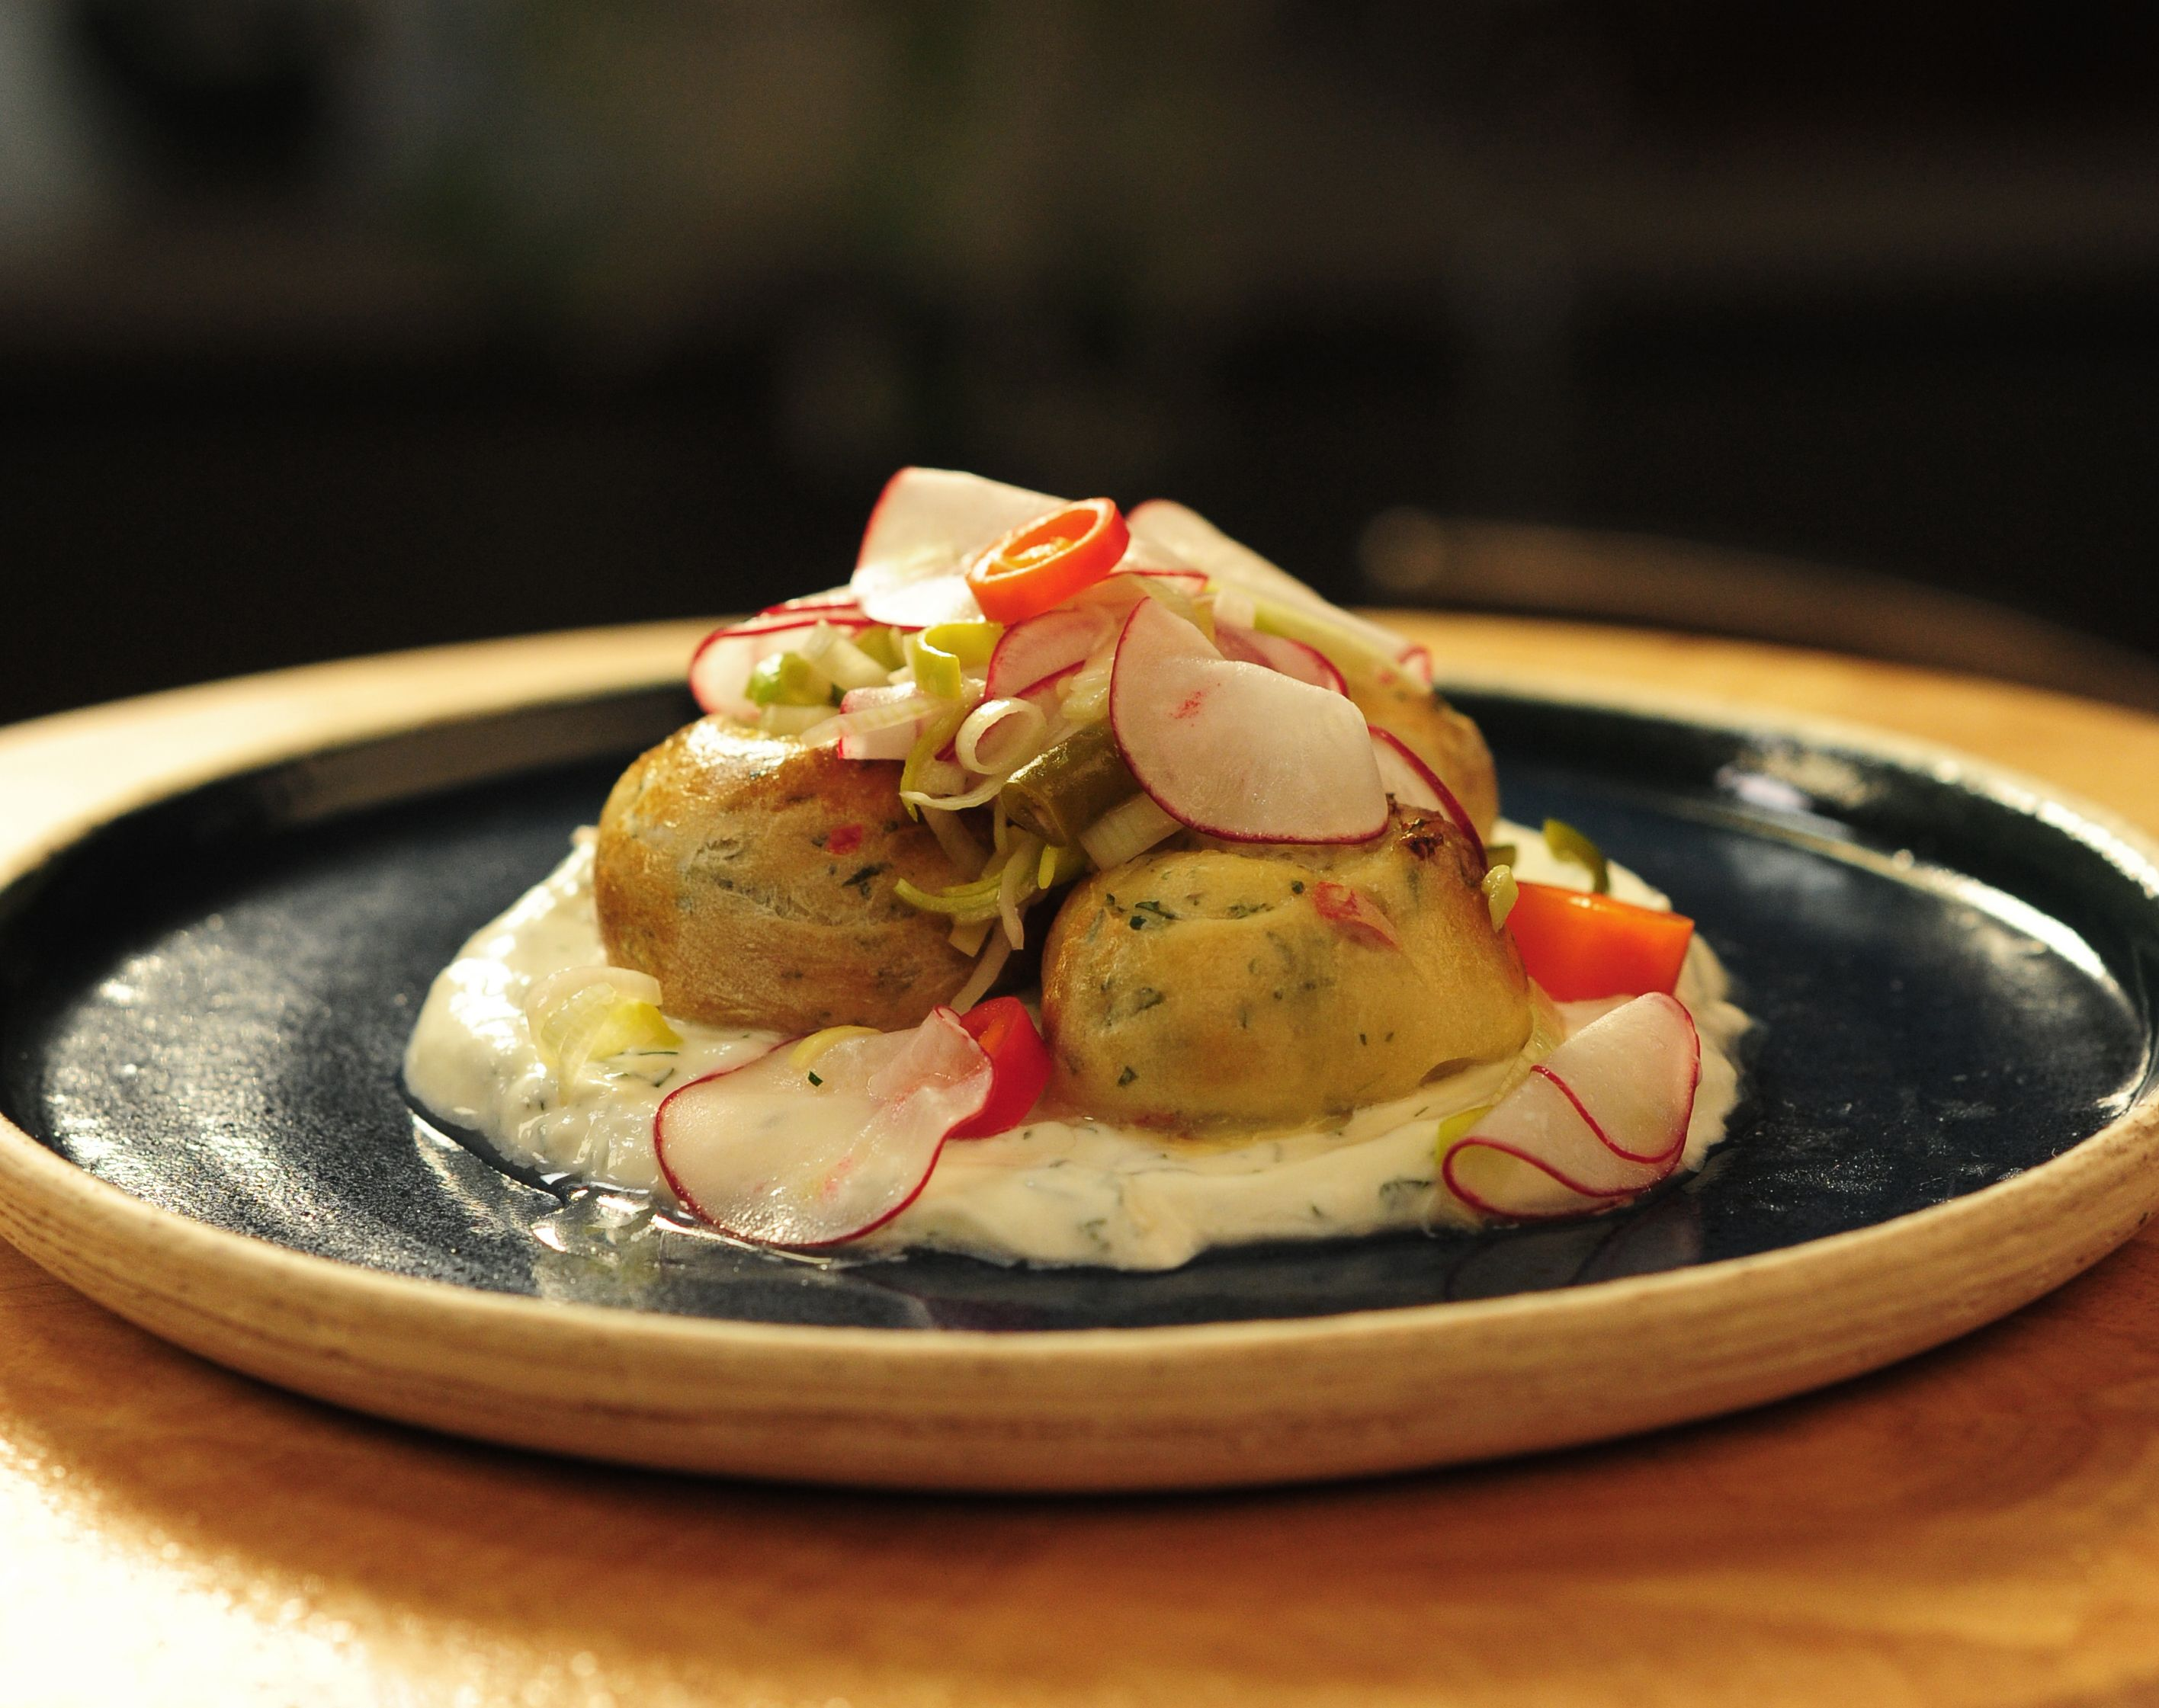 Pin by suman jolly on yum bakes pinterest chicken dumplings baked chicken dumplings with pickled chilli rachel khoos mini sausage rolls with a yoghurt sauce and salad forumfinder Choice Image